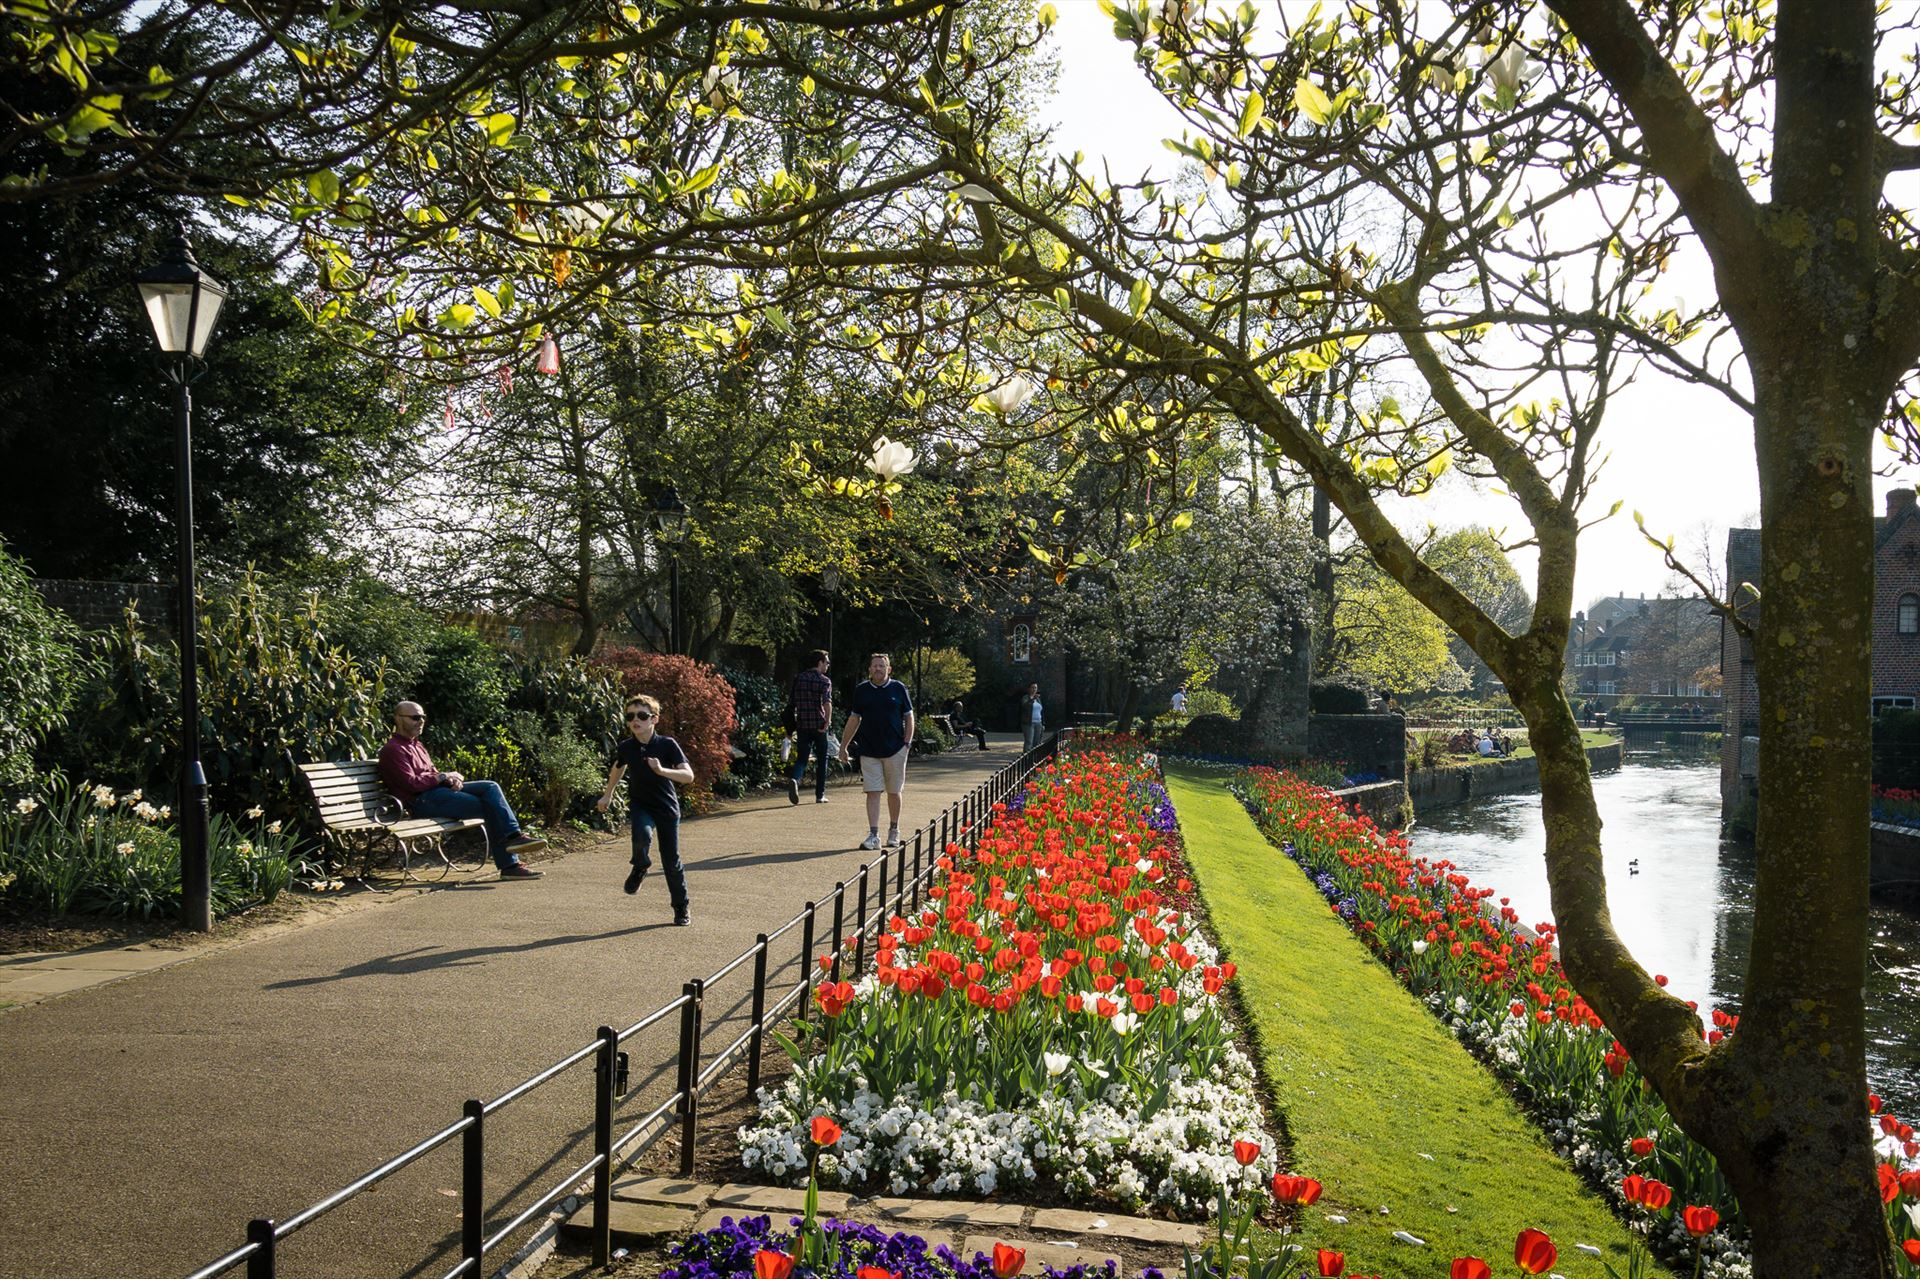 Spring Canterbury's Westgate gardens with its spring blooms